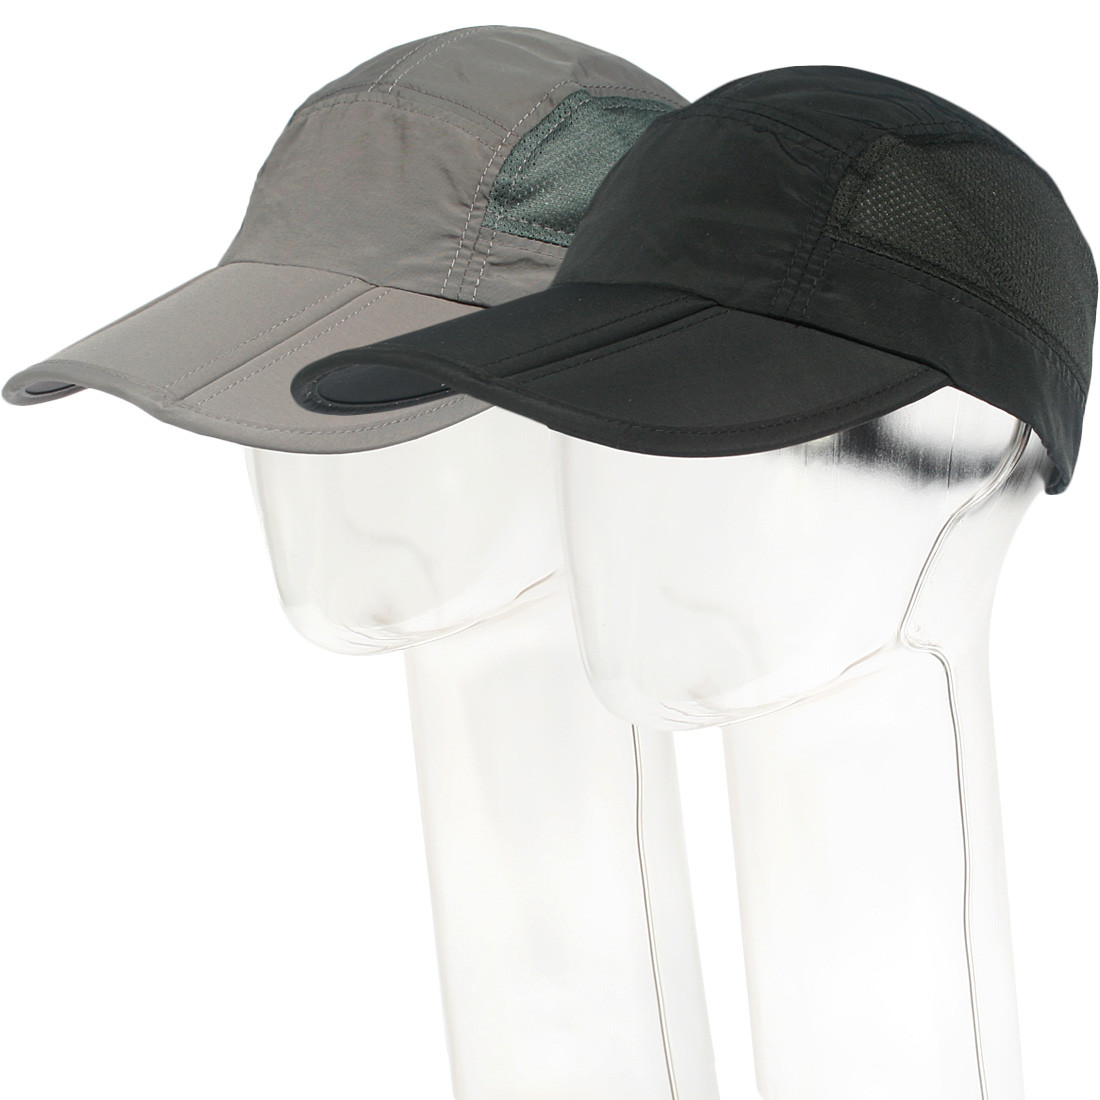 82bcdf7a4a249 kilofly Mens Foldable Lightweight Quick Dry Adjustable Outdoor Cap, Set of 2.  See more images